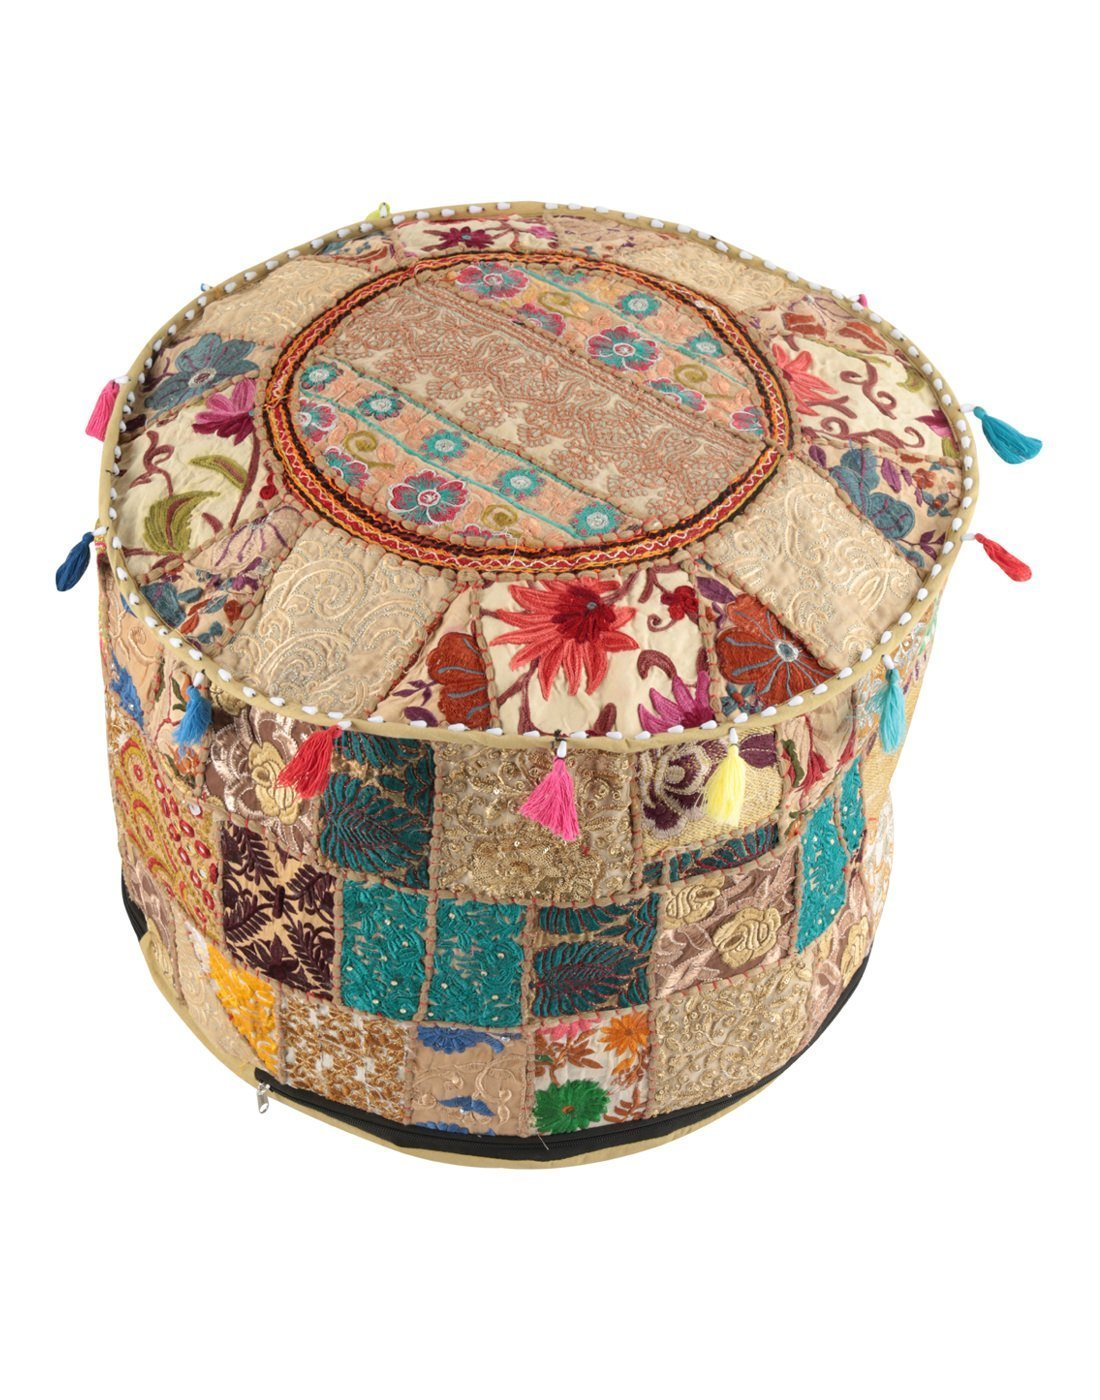 NANDNANDINI - Beautiful HANDMADE Christmas Decorative Indian Vintage Ottoman Pouf Cover ,Patchwork Ottoman, Living Room Patchwork Foot Stool Cover,Decorative Handmade Home Chair Cover